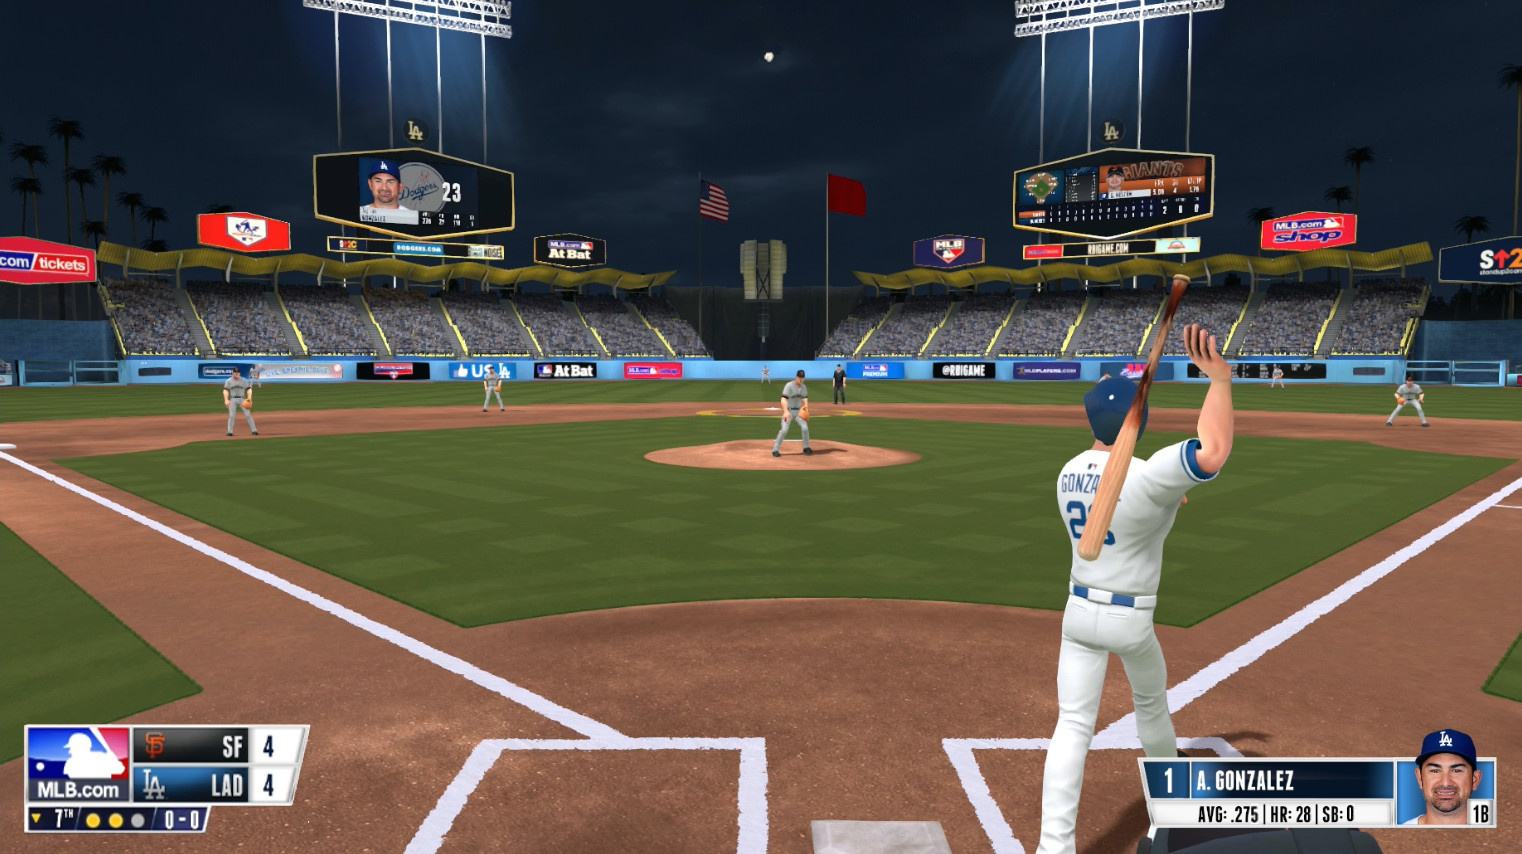 RBI Baseball 16 PS4 PlayStation 4 News Reviews